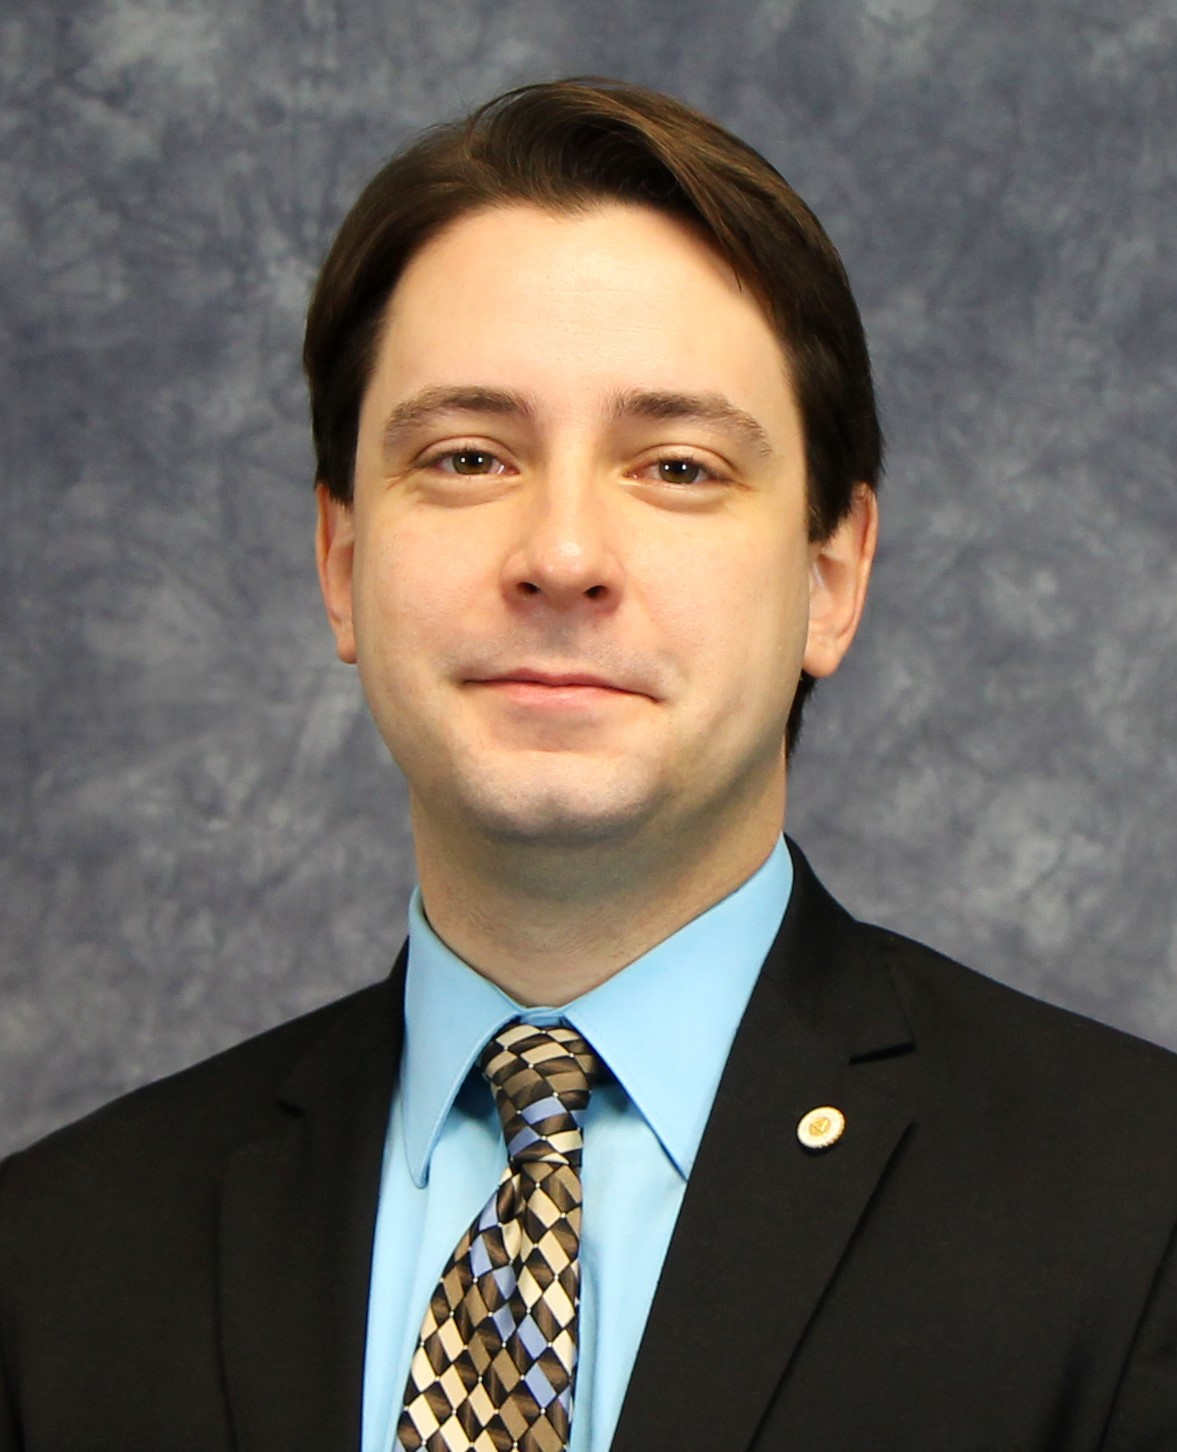 County Clerk George L. Christenson Appoints Stefan Dostanic as Deputy County Clerk